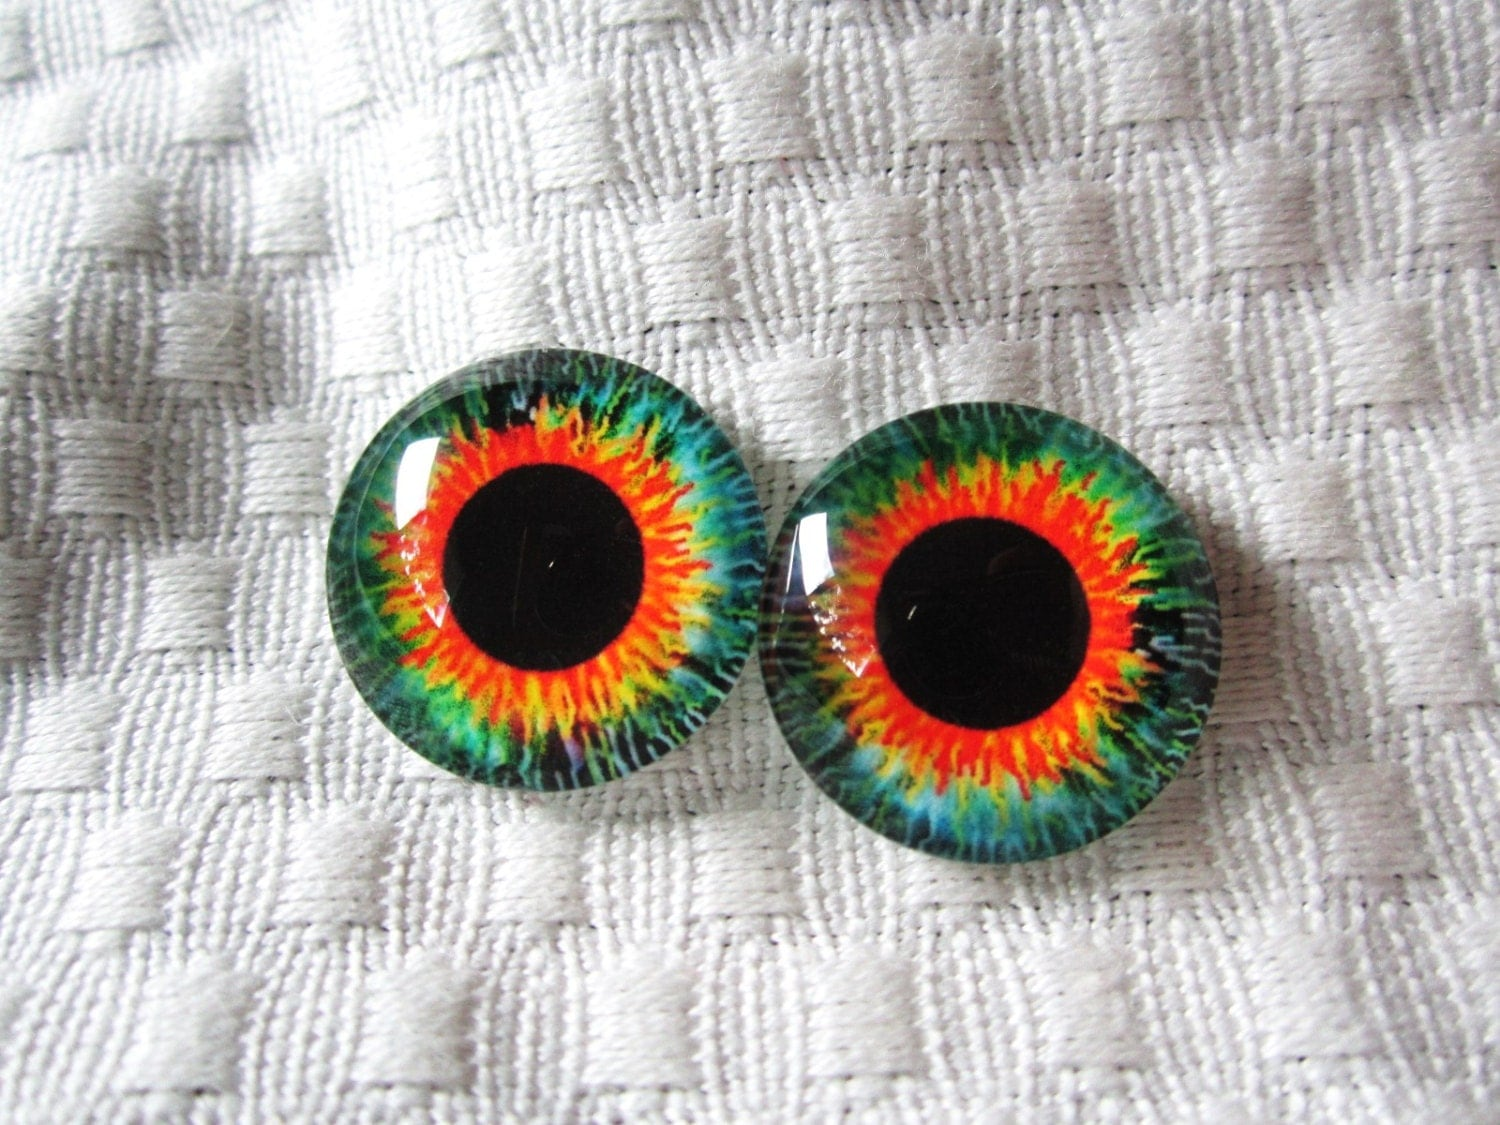 Glass eyes for jewelry making or crafts 20mm cabochons for Glass jewels for crafts